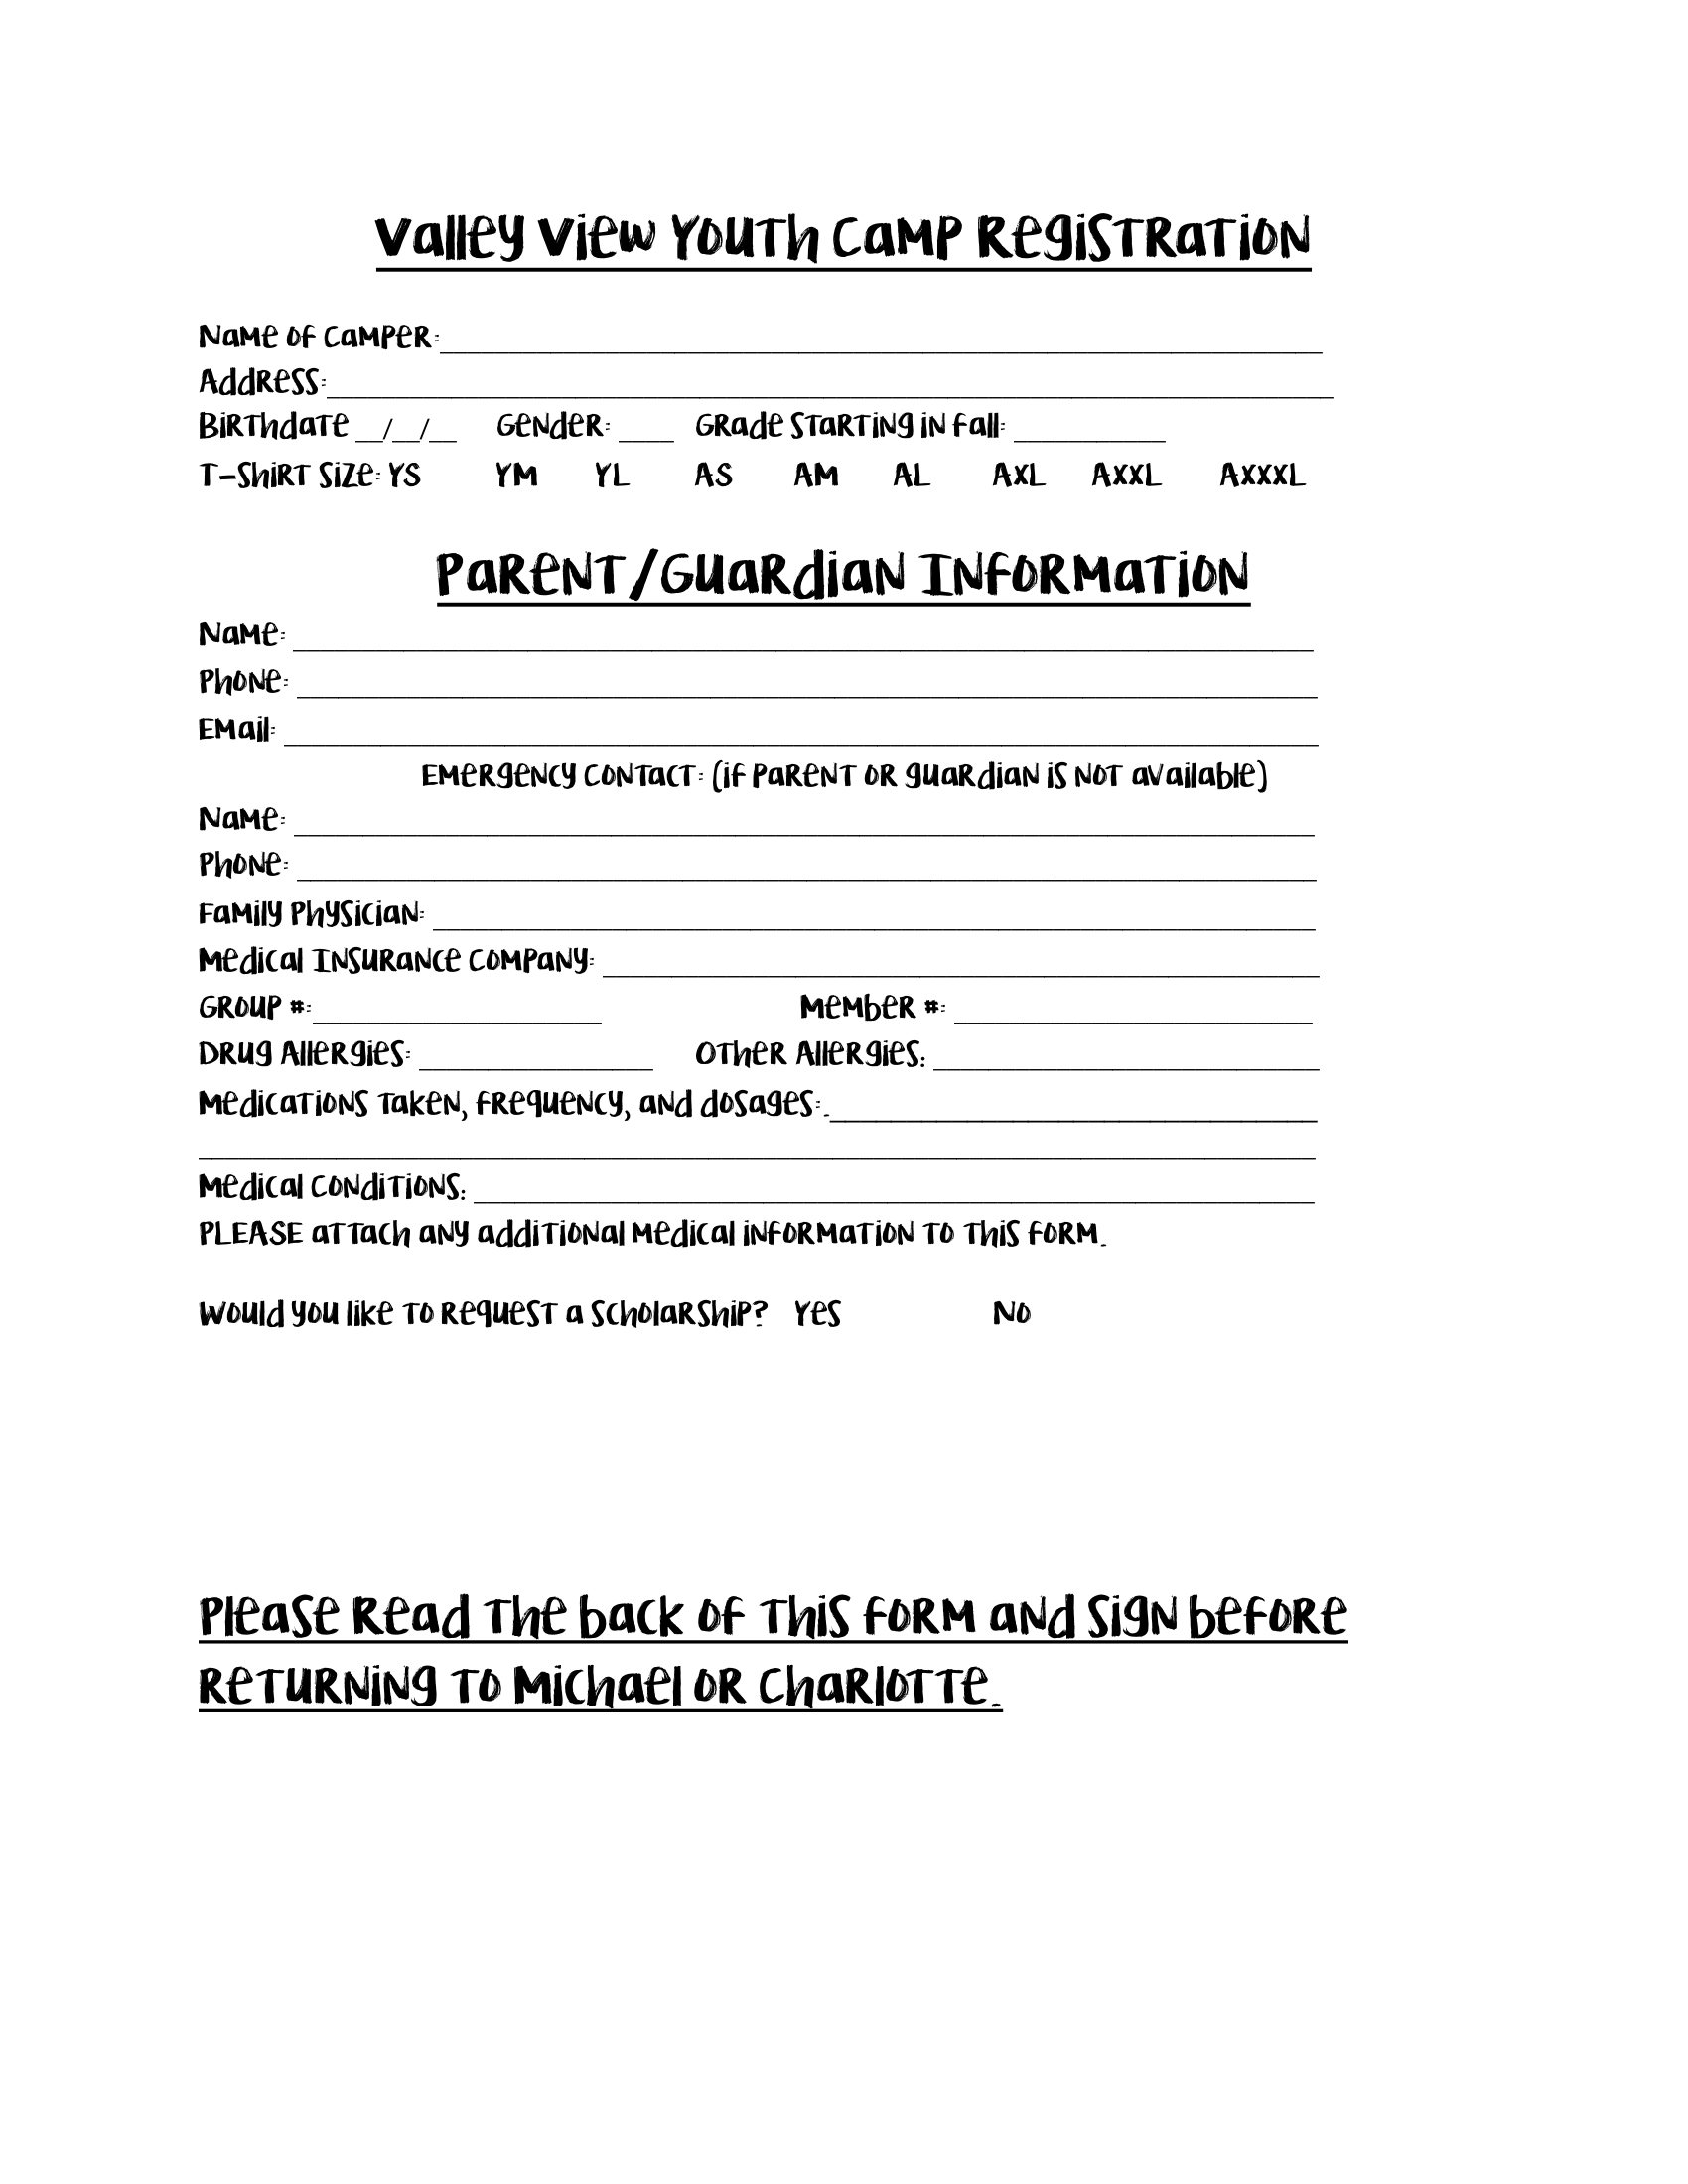 Print this off and fill it out and mail to 4500 Southwest Dr Jonesboro, AR 72404.